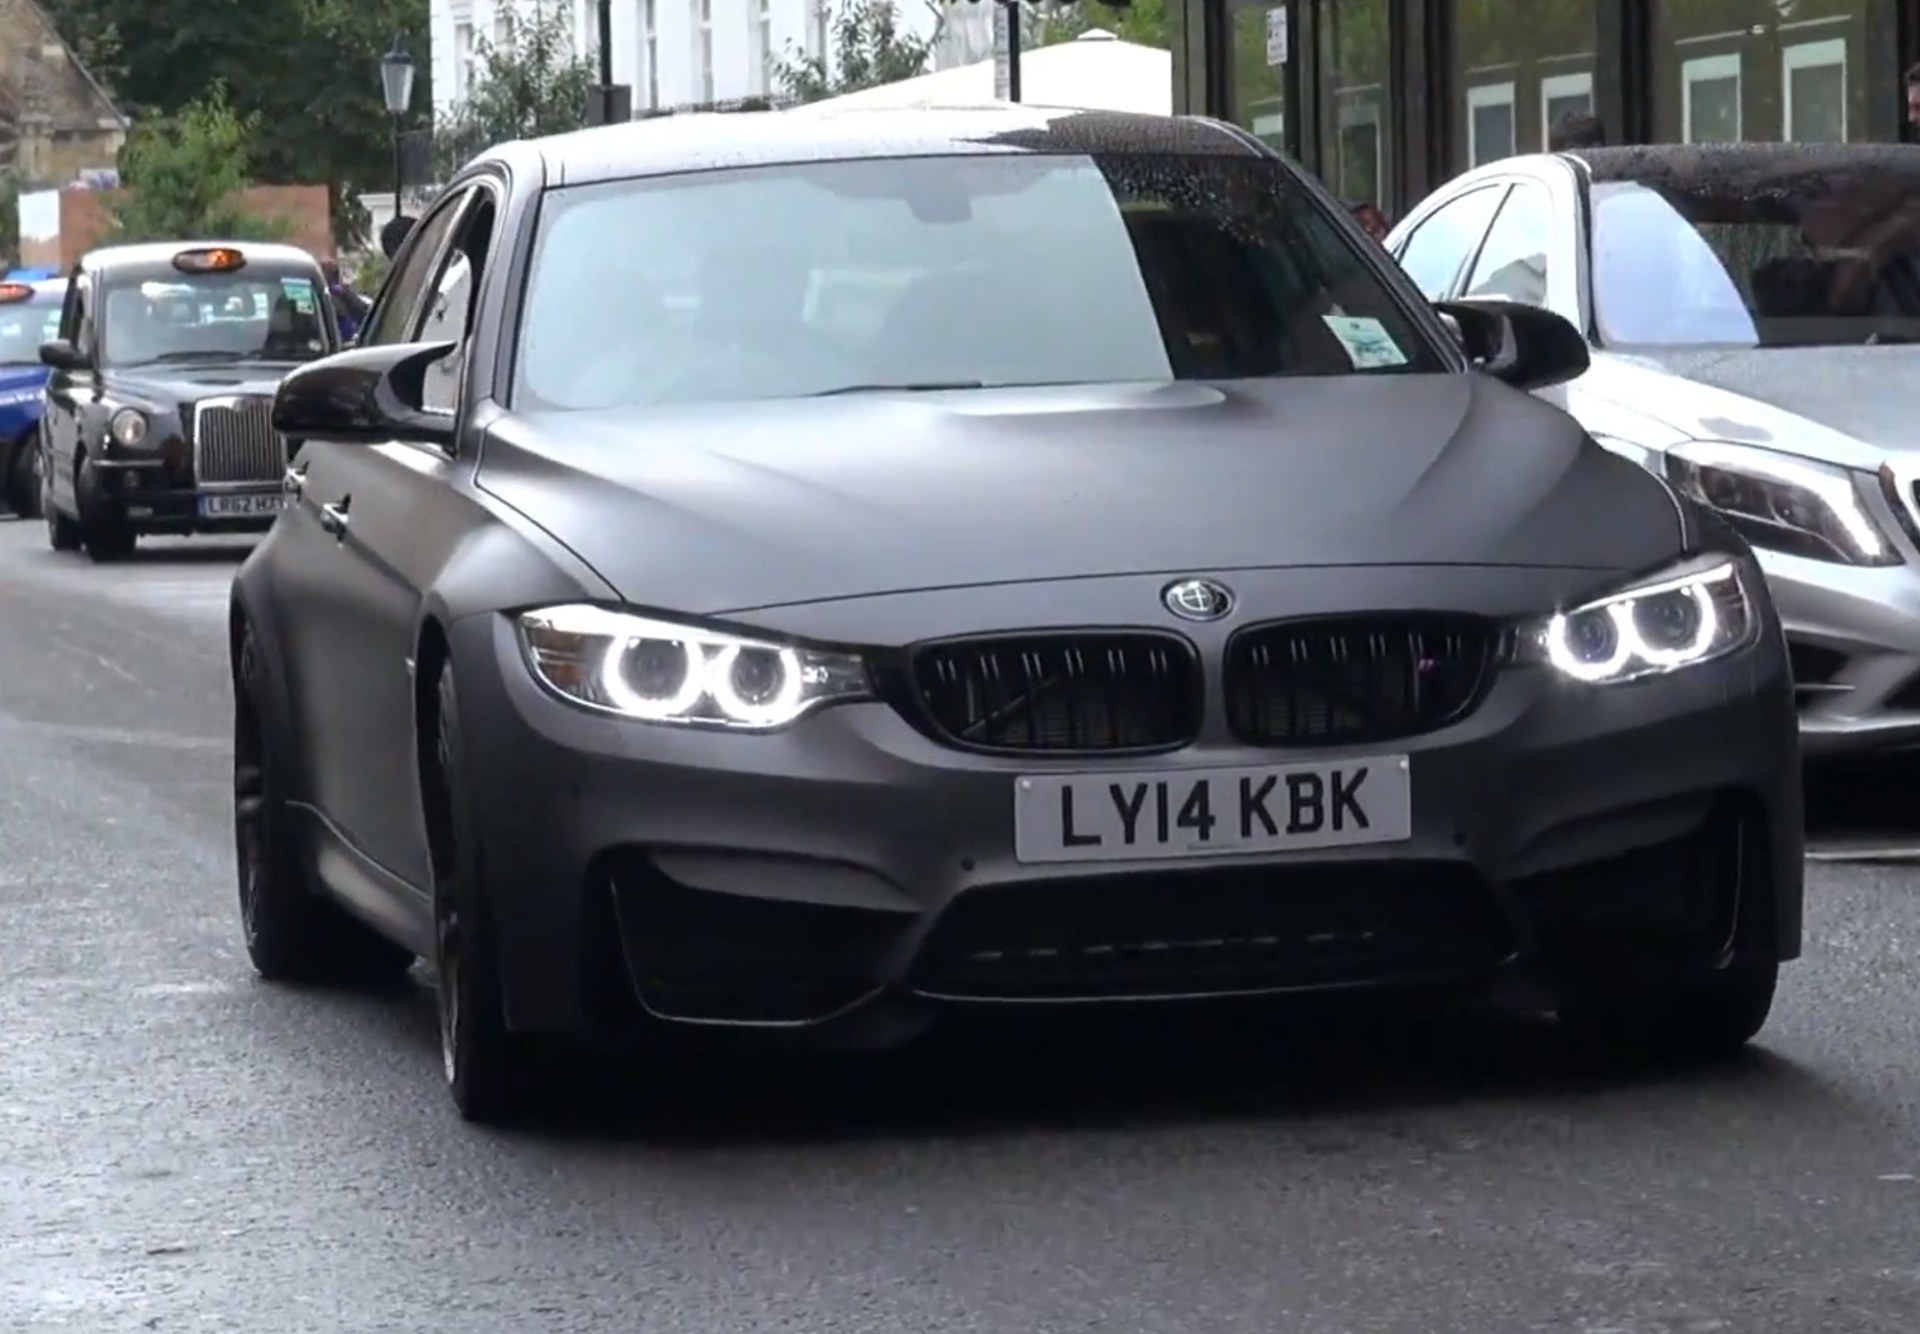 Bmw M3 F80 In Frozen Grey Video Zeigt Folierung In Mattem